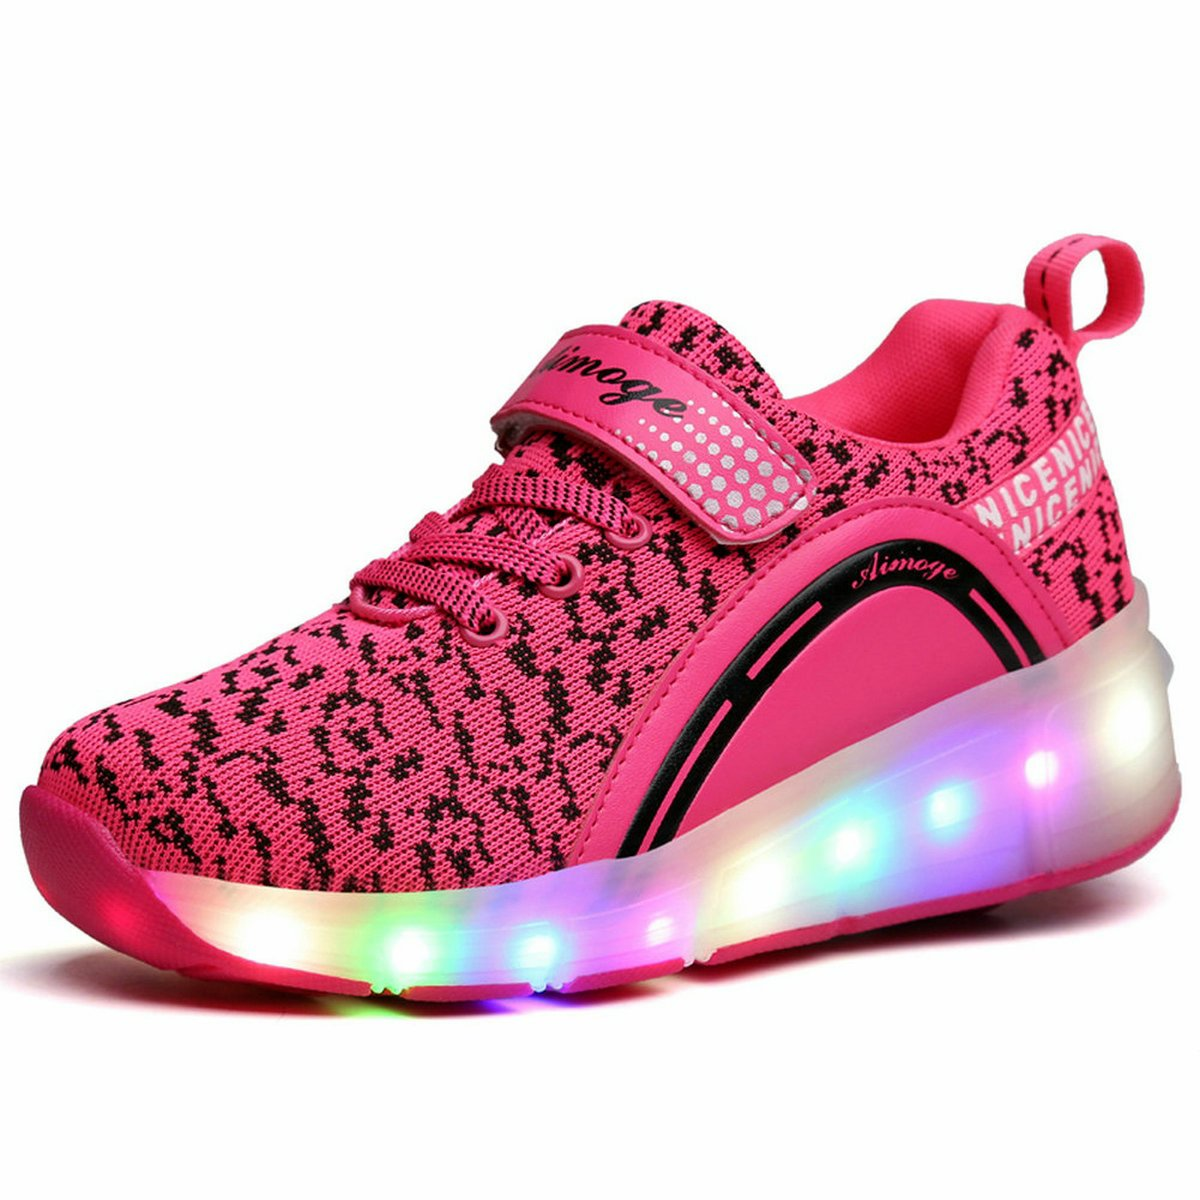 Zcoins Boy Girl Roller Shoes with Light Flashing Wheels Skate Sneaker for Kids Teens